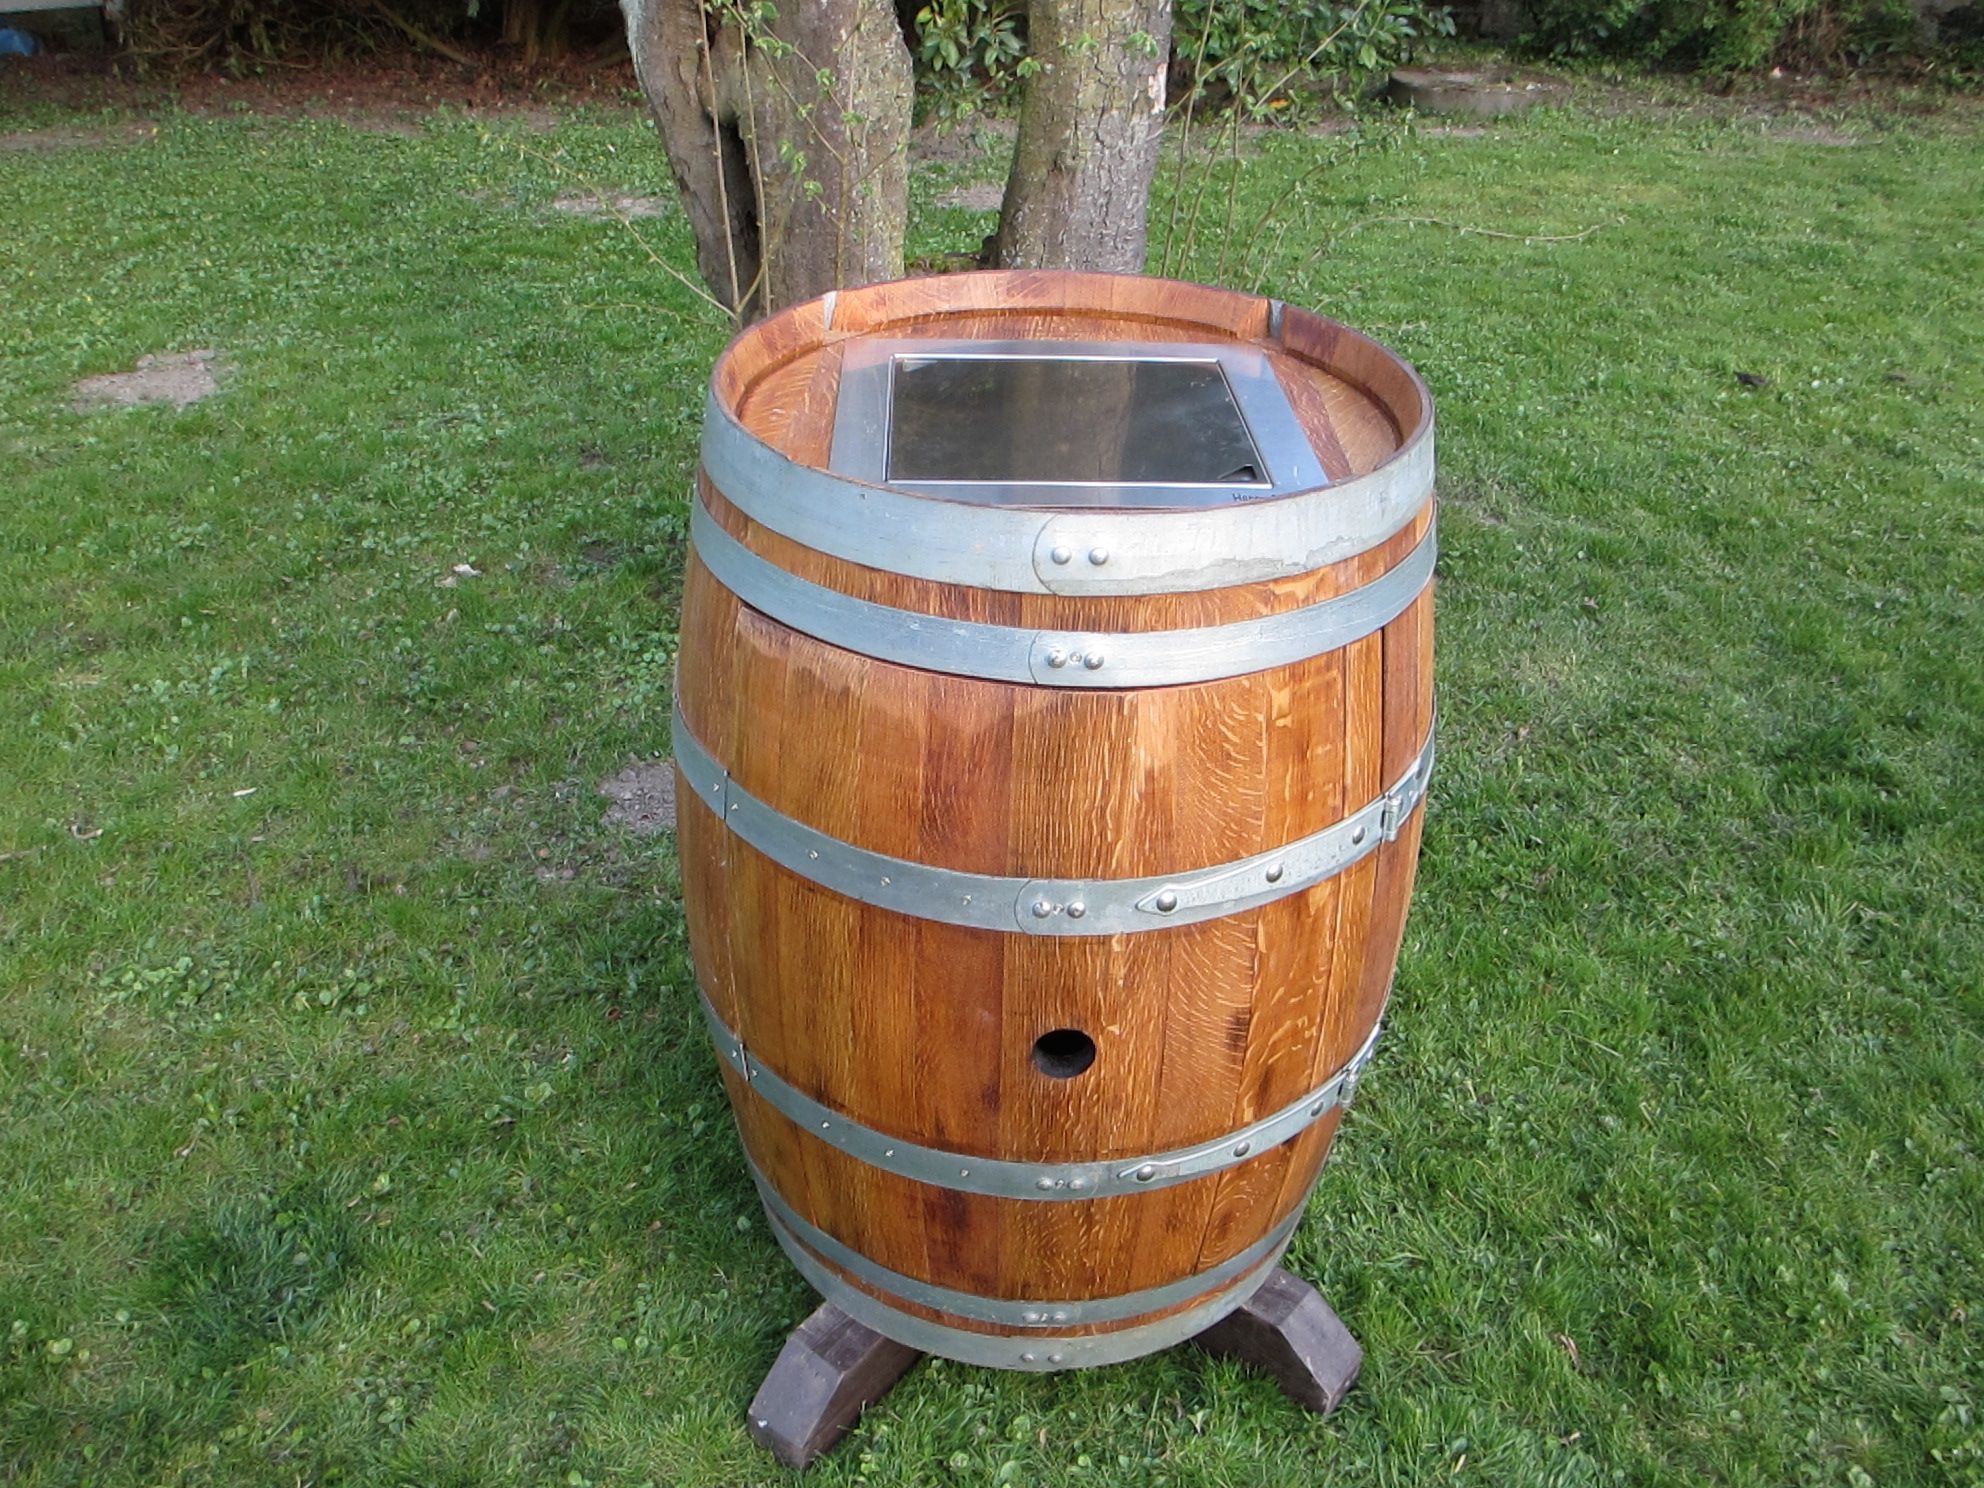 diy wine barrel furniture weink hler im weinfa wine barrel furniture pinterest holzfass. Black Bedroom Furniture Sets. Home Design Ideas